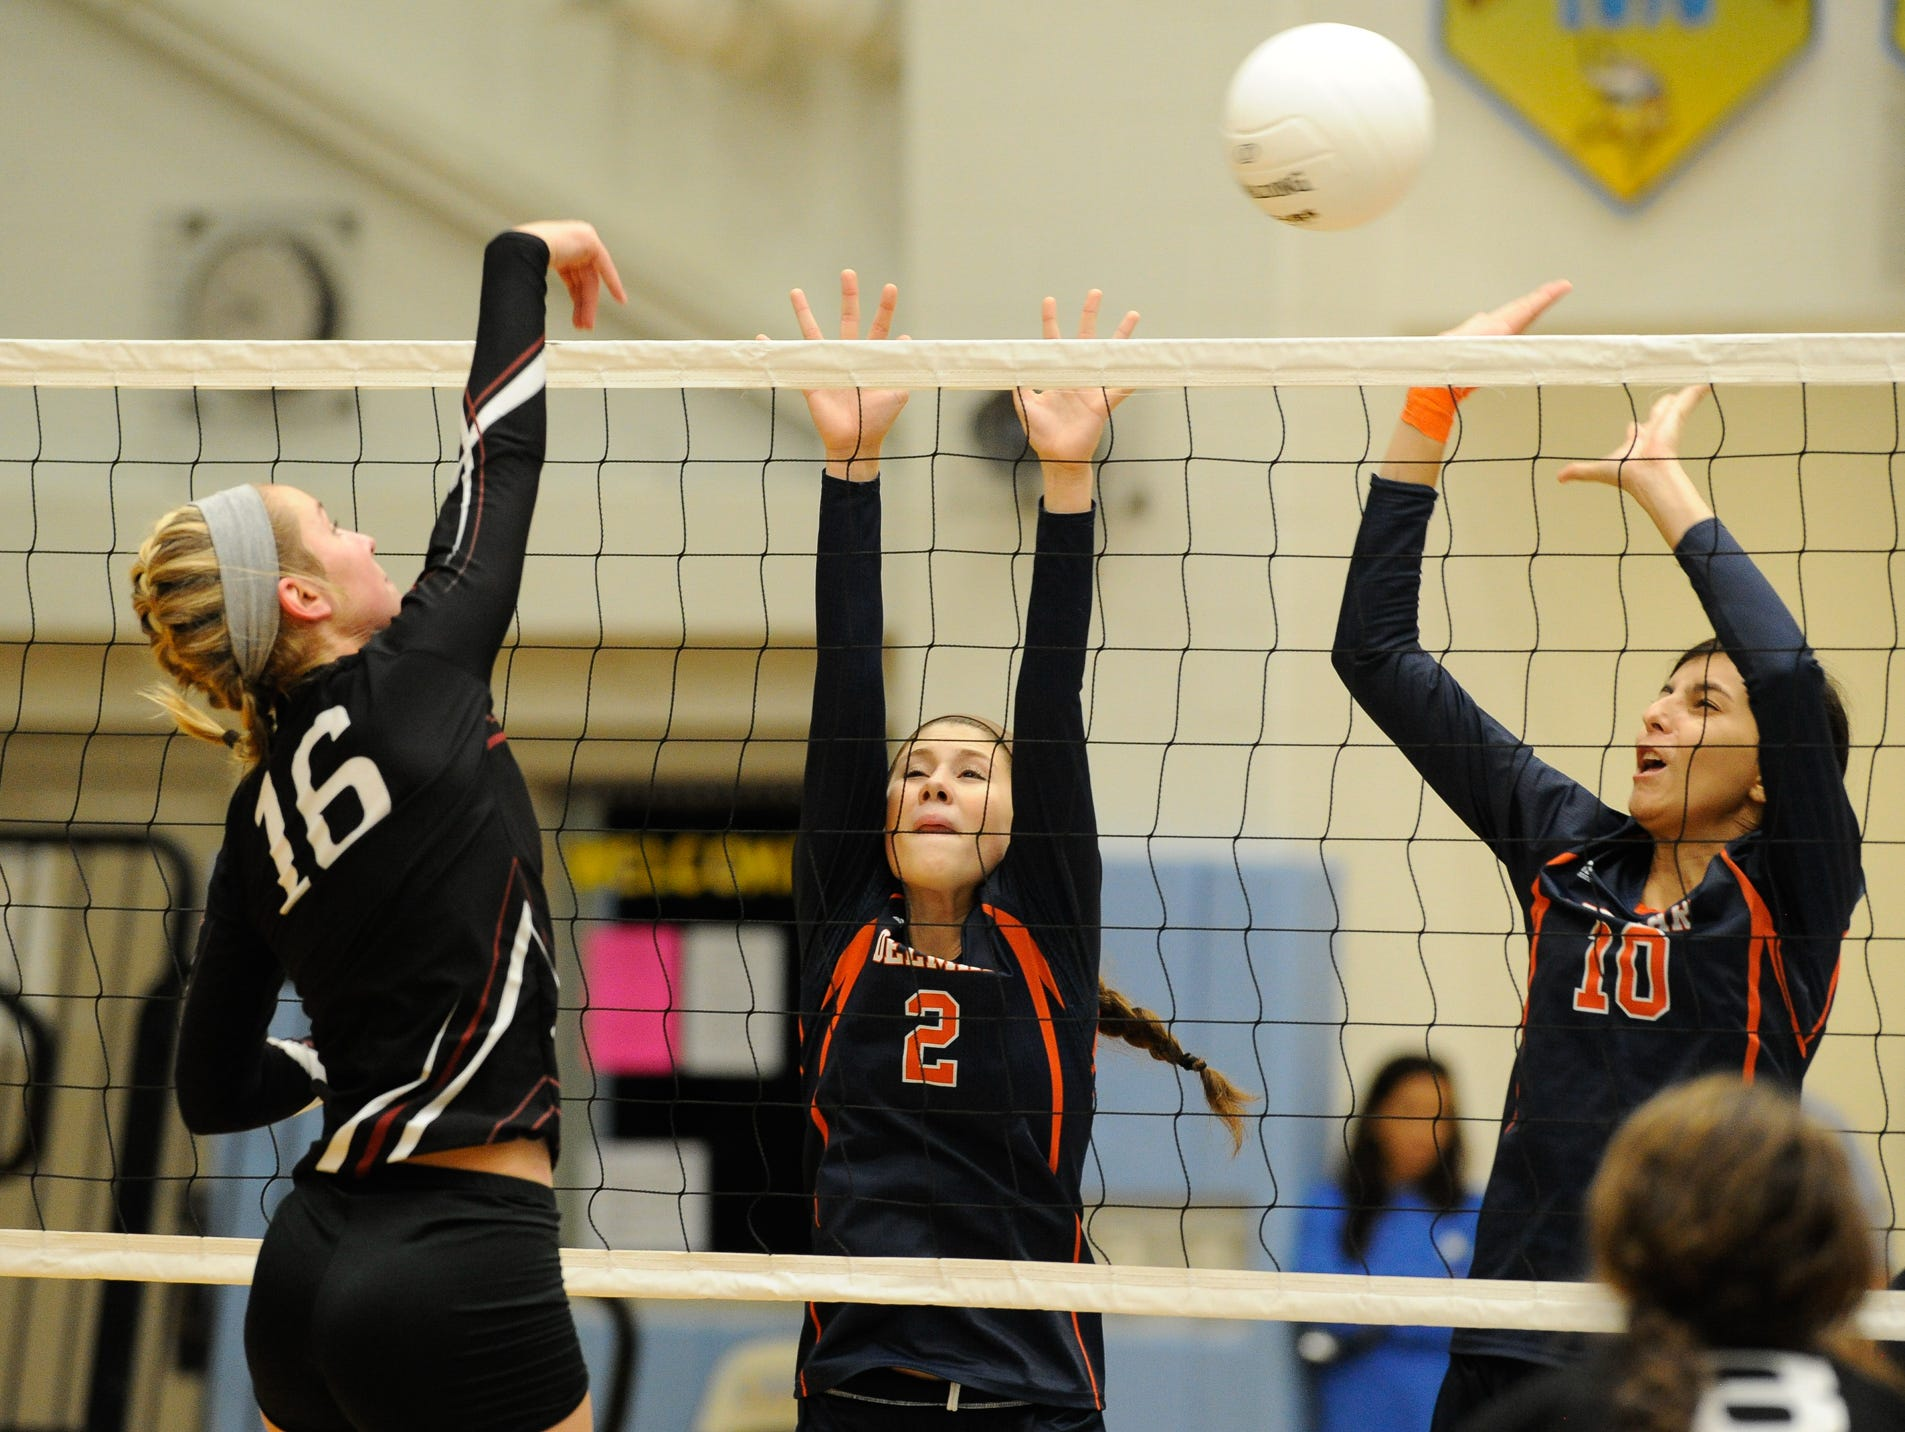 Appoquinimink's #16 Emily Aniunas jumps up for a spike in their game against Delmar, Thursday night at Cape Henlopen High School.